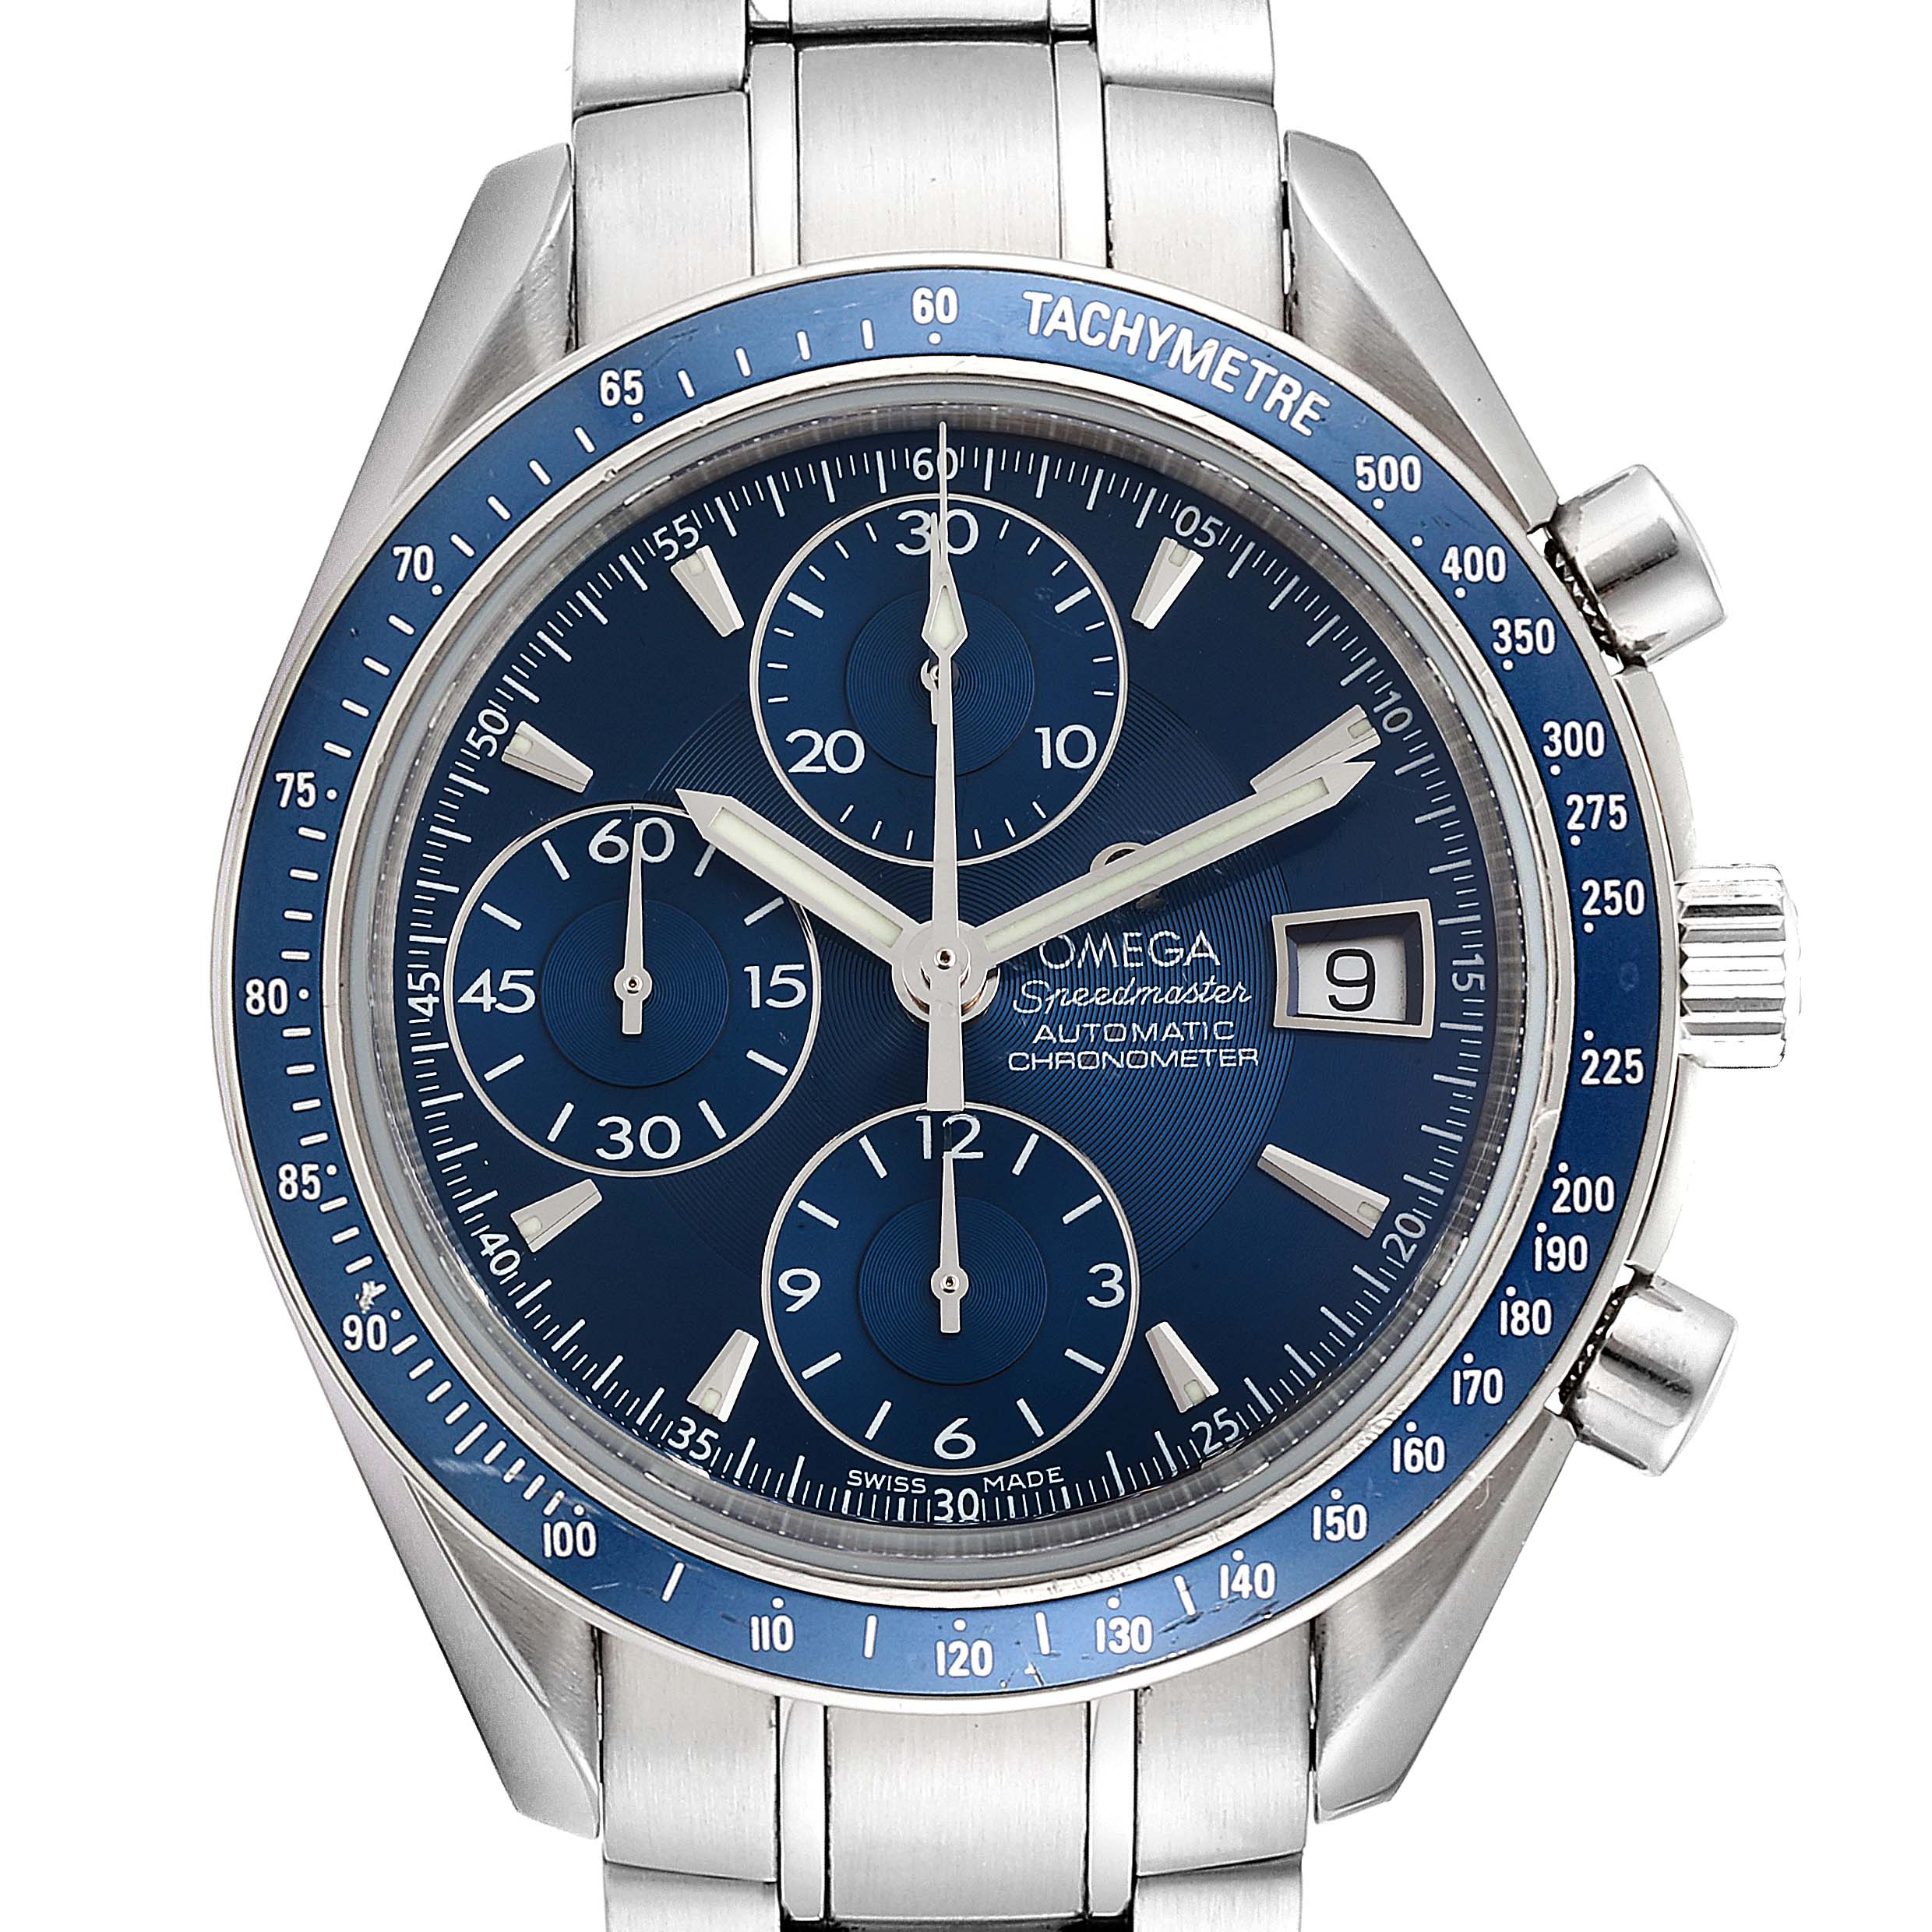 Omega Speedmaster Date Blue Dial Chrono Watch 3212.80.00 Card